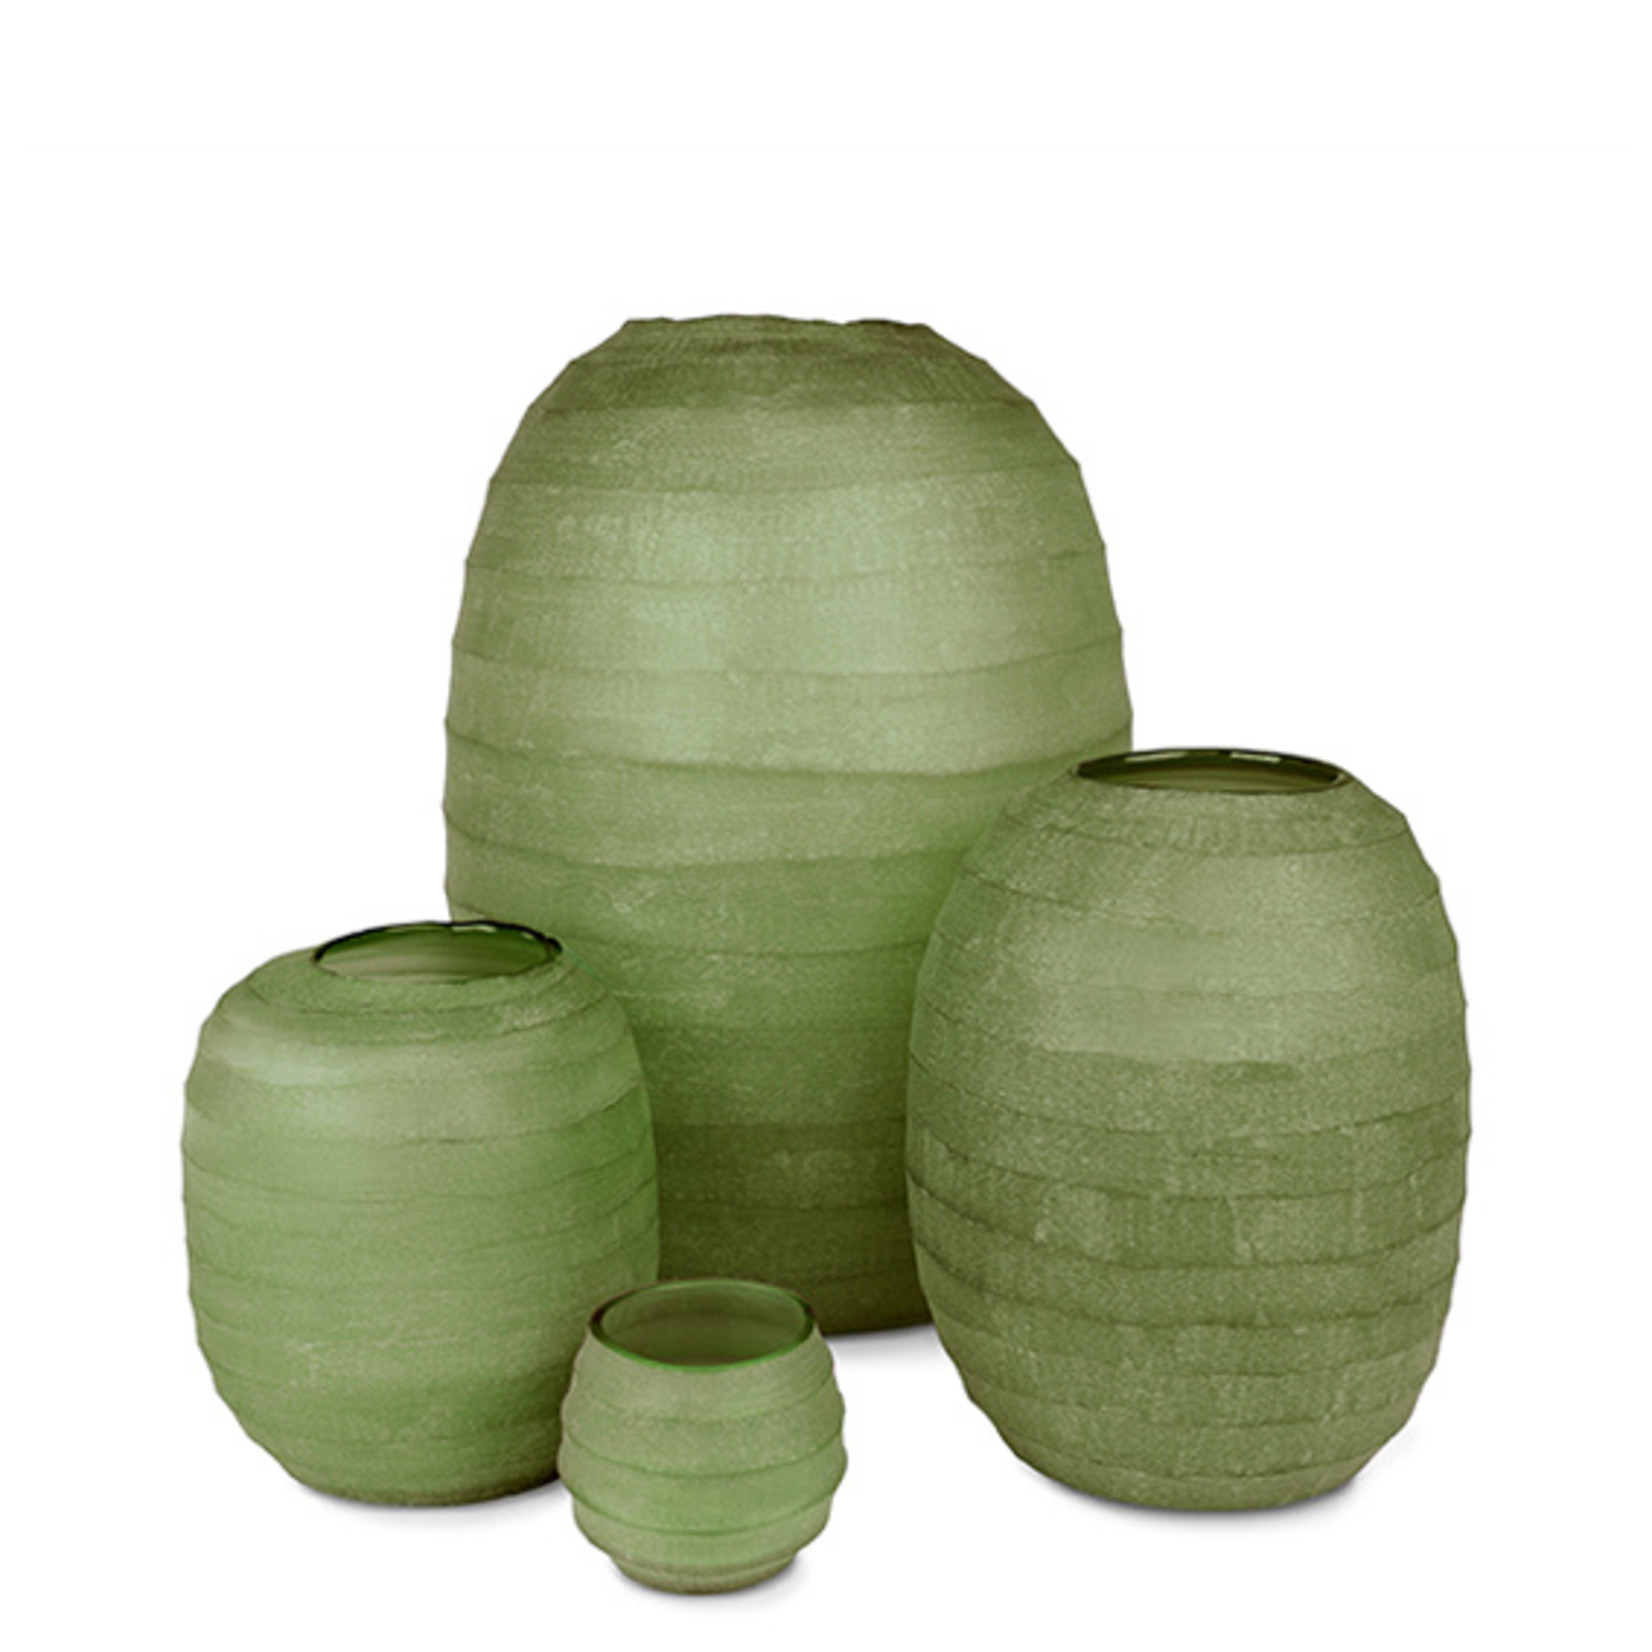 Guaxs Vase Belly L   Olive Green